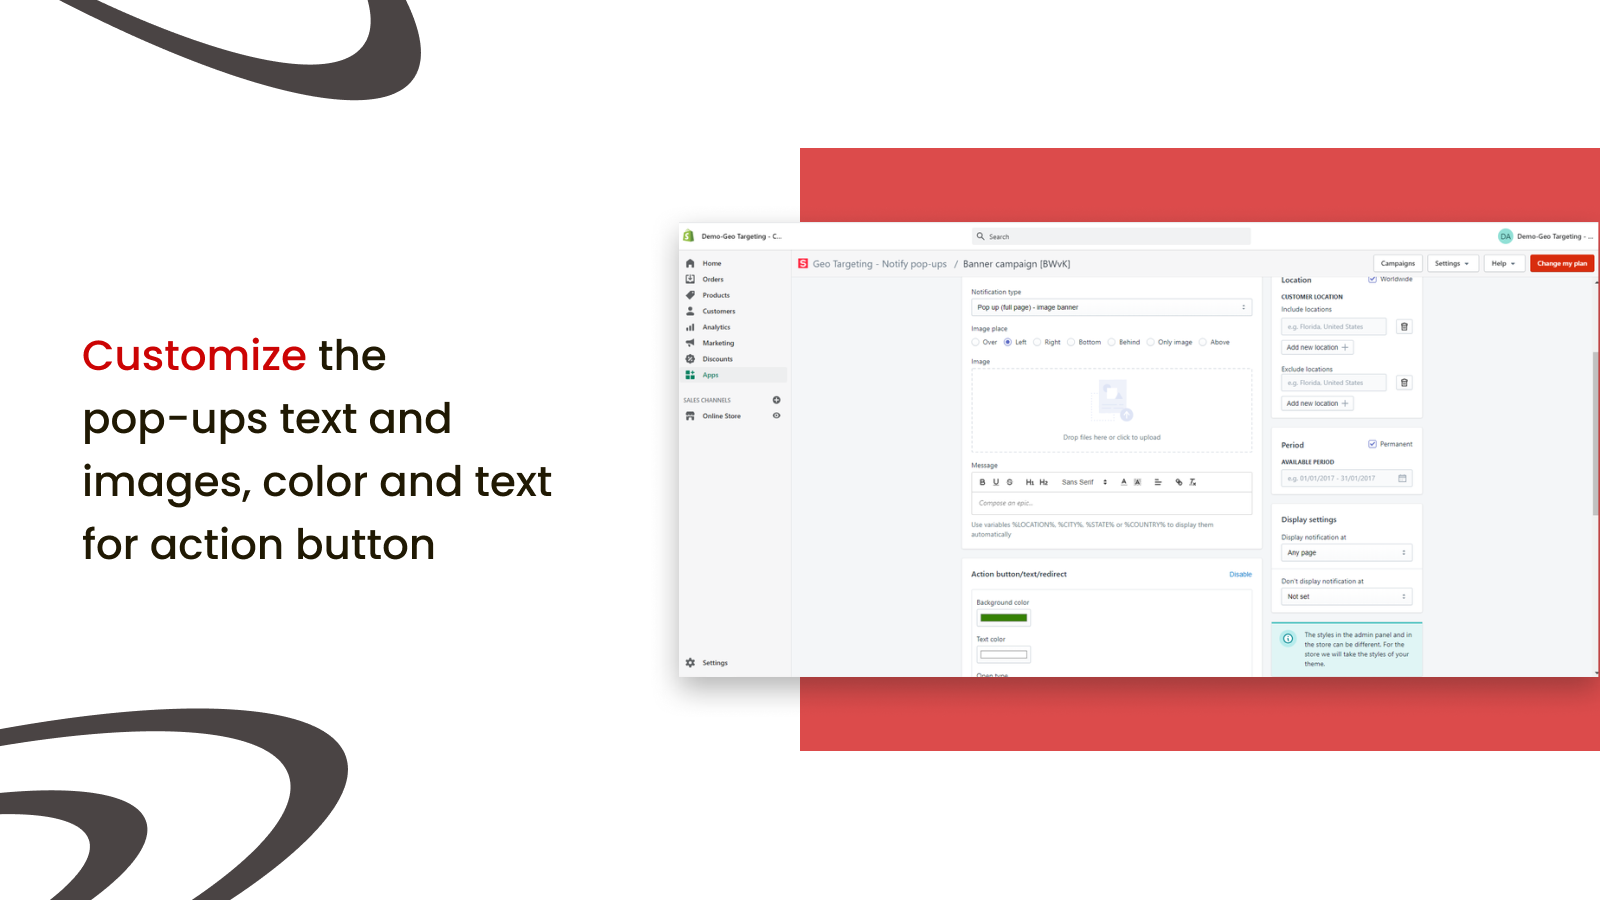 Customize the pop-ups text and images, color and text for action